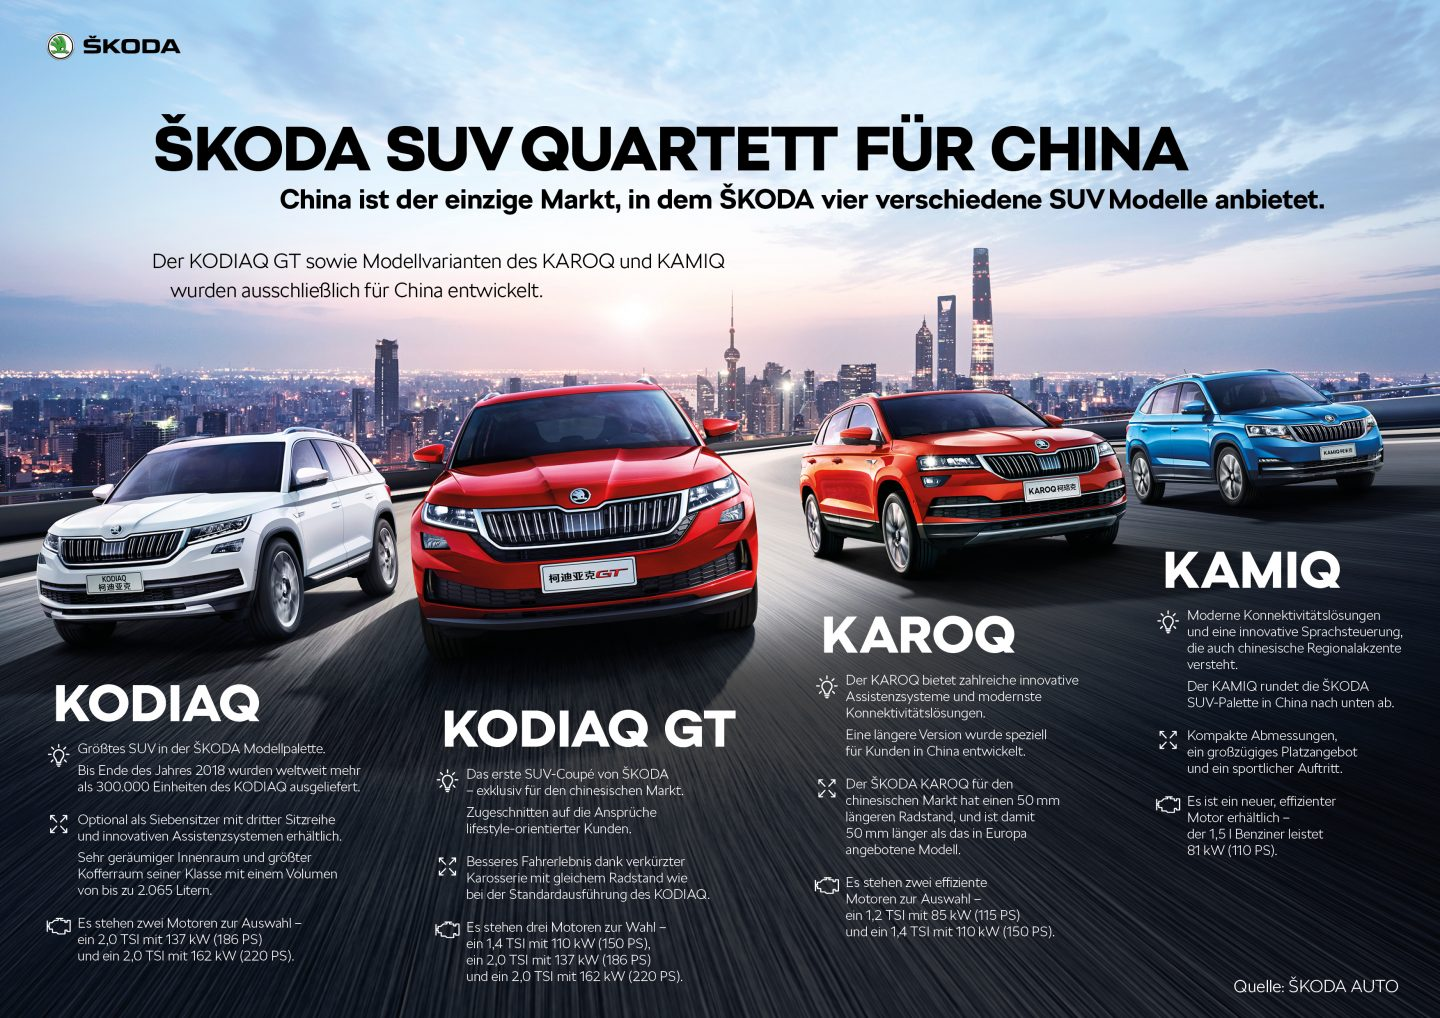 SKODA SUV Quartett fuer China